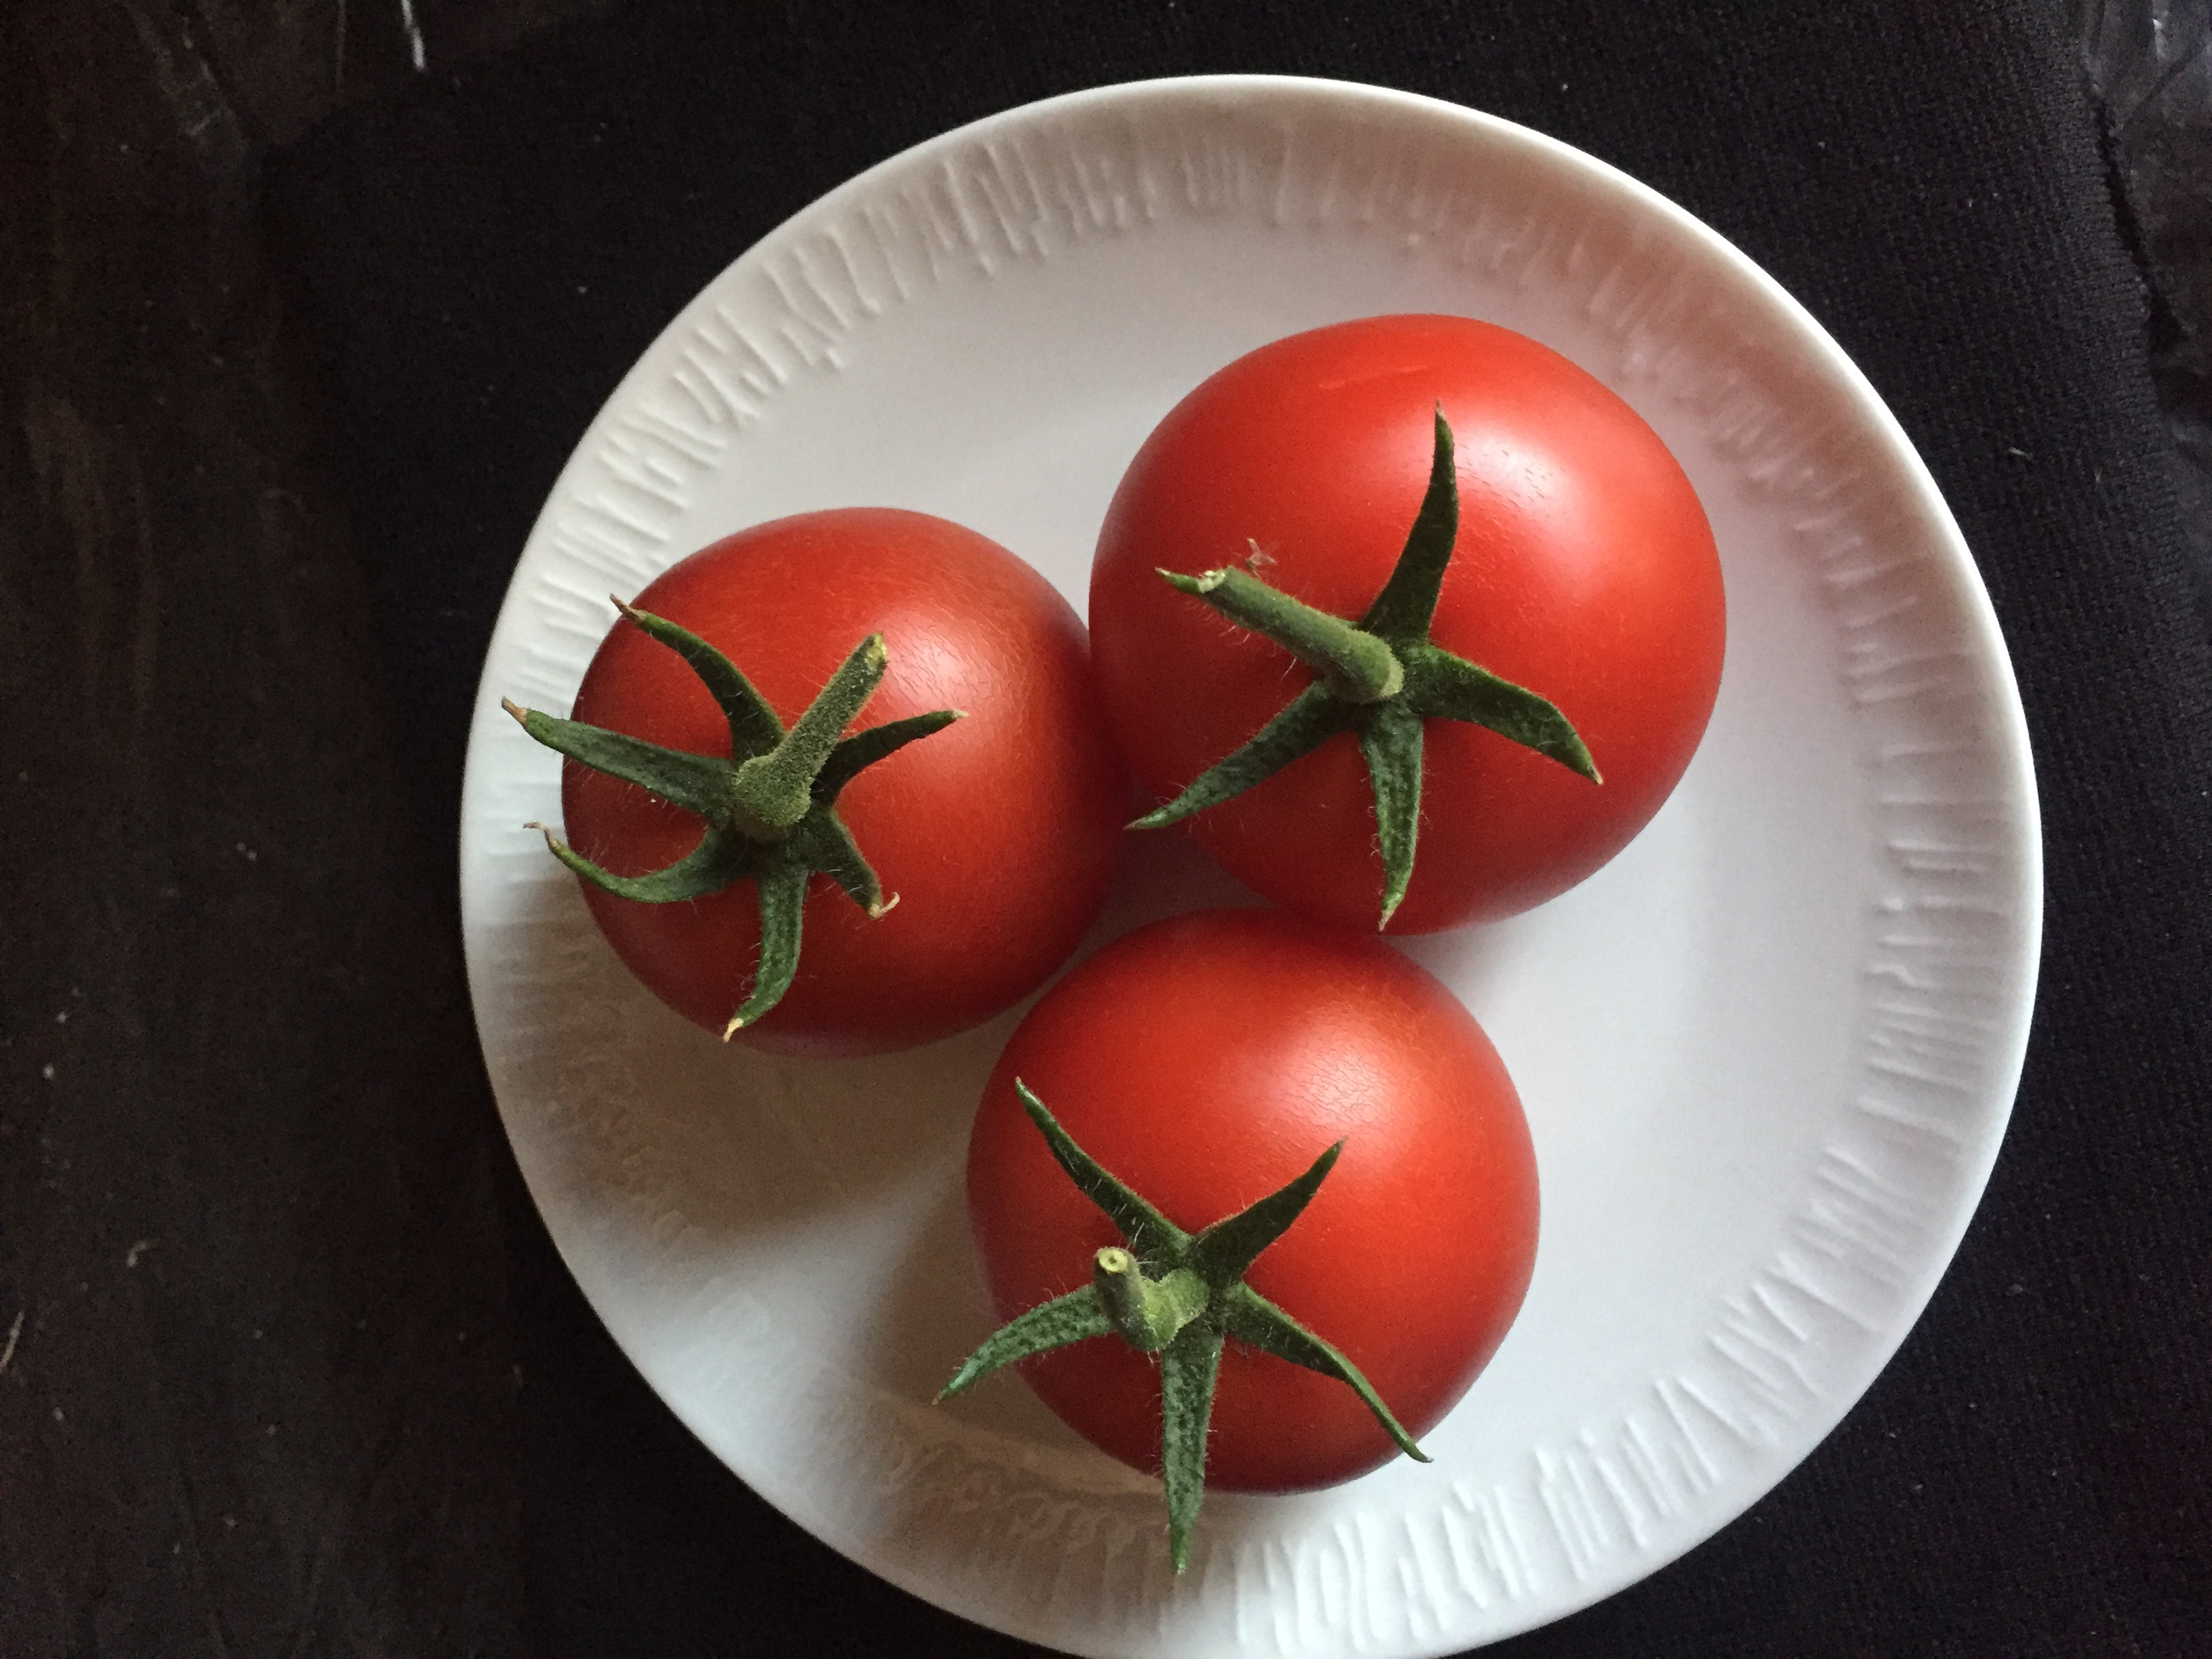 2nd Prize Tomatoes, three medium